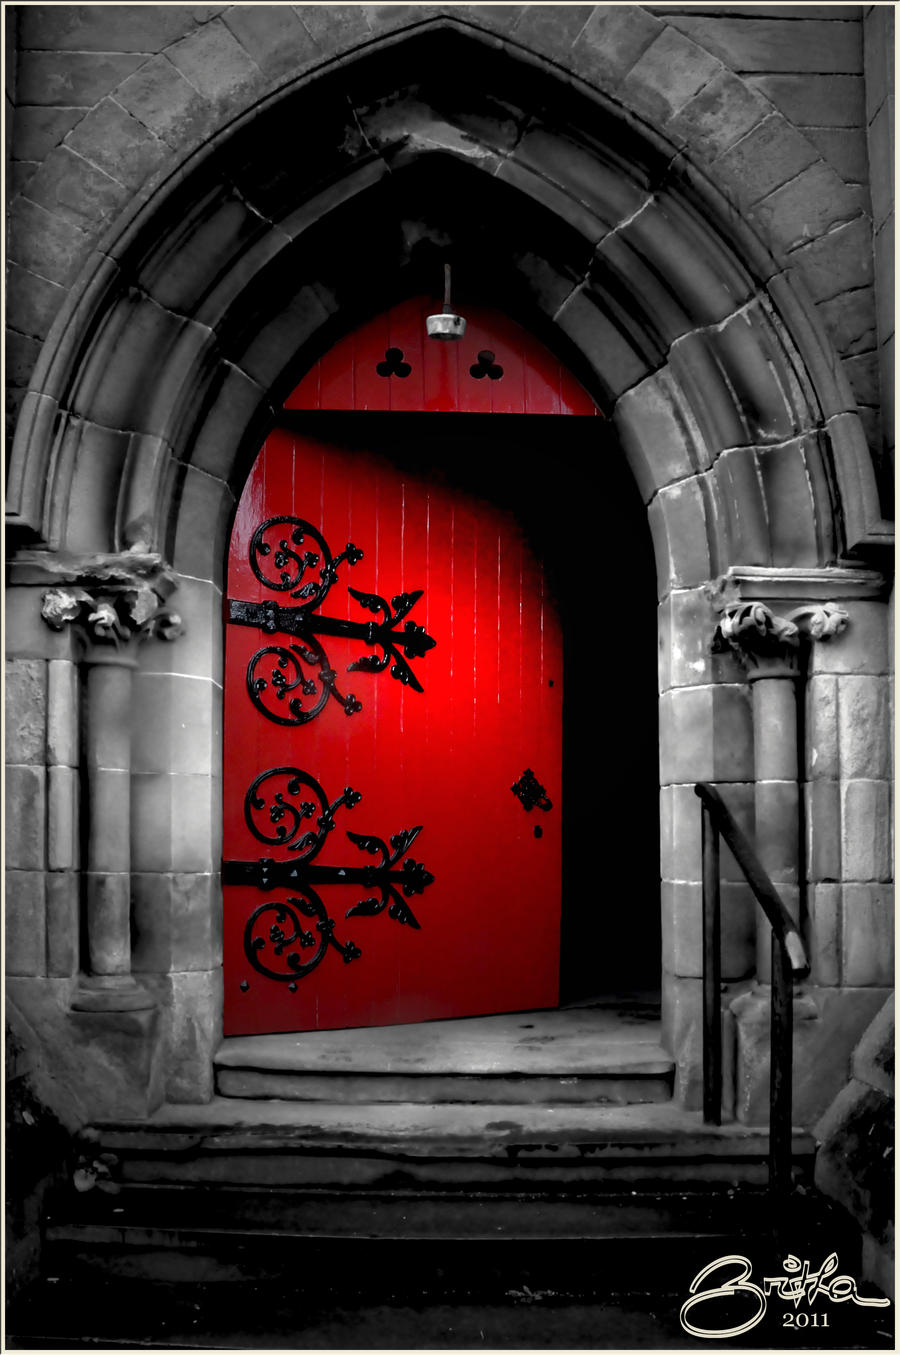 The Red Door By Brijome On Deviantart